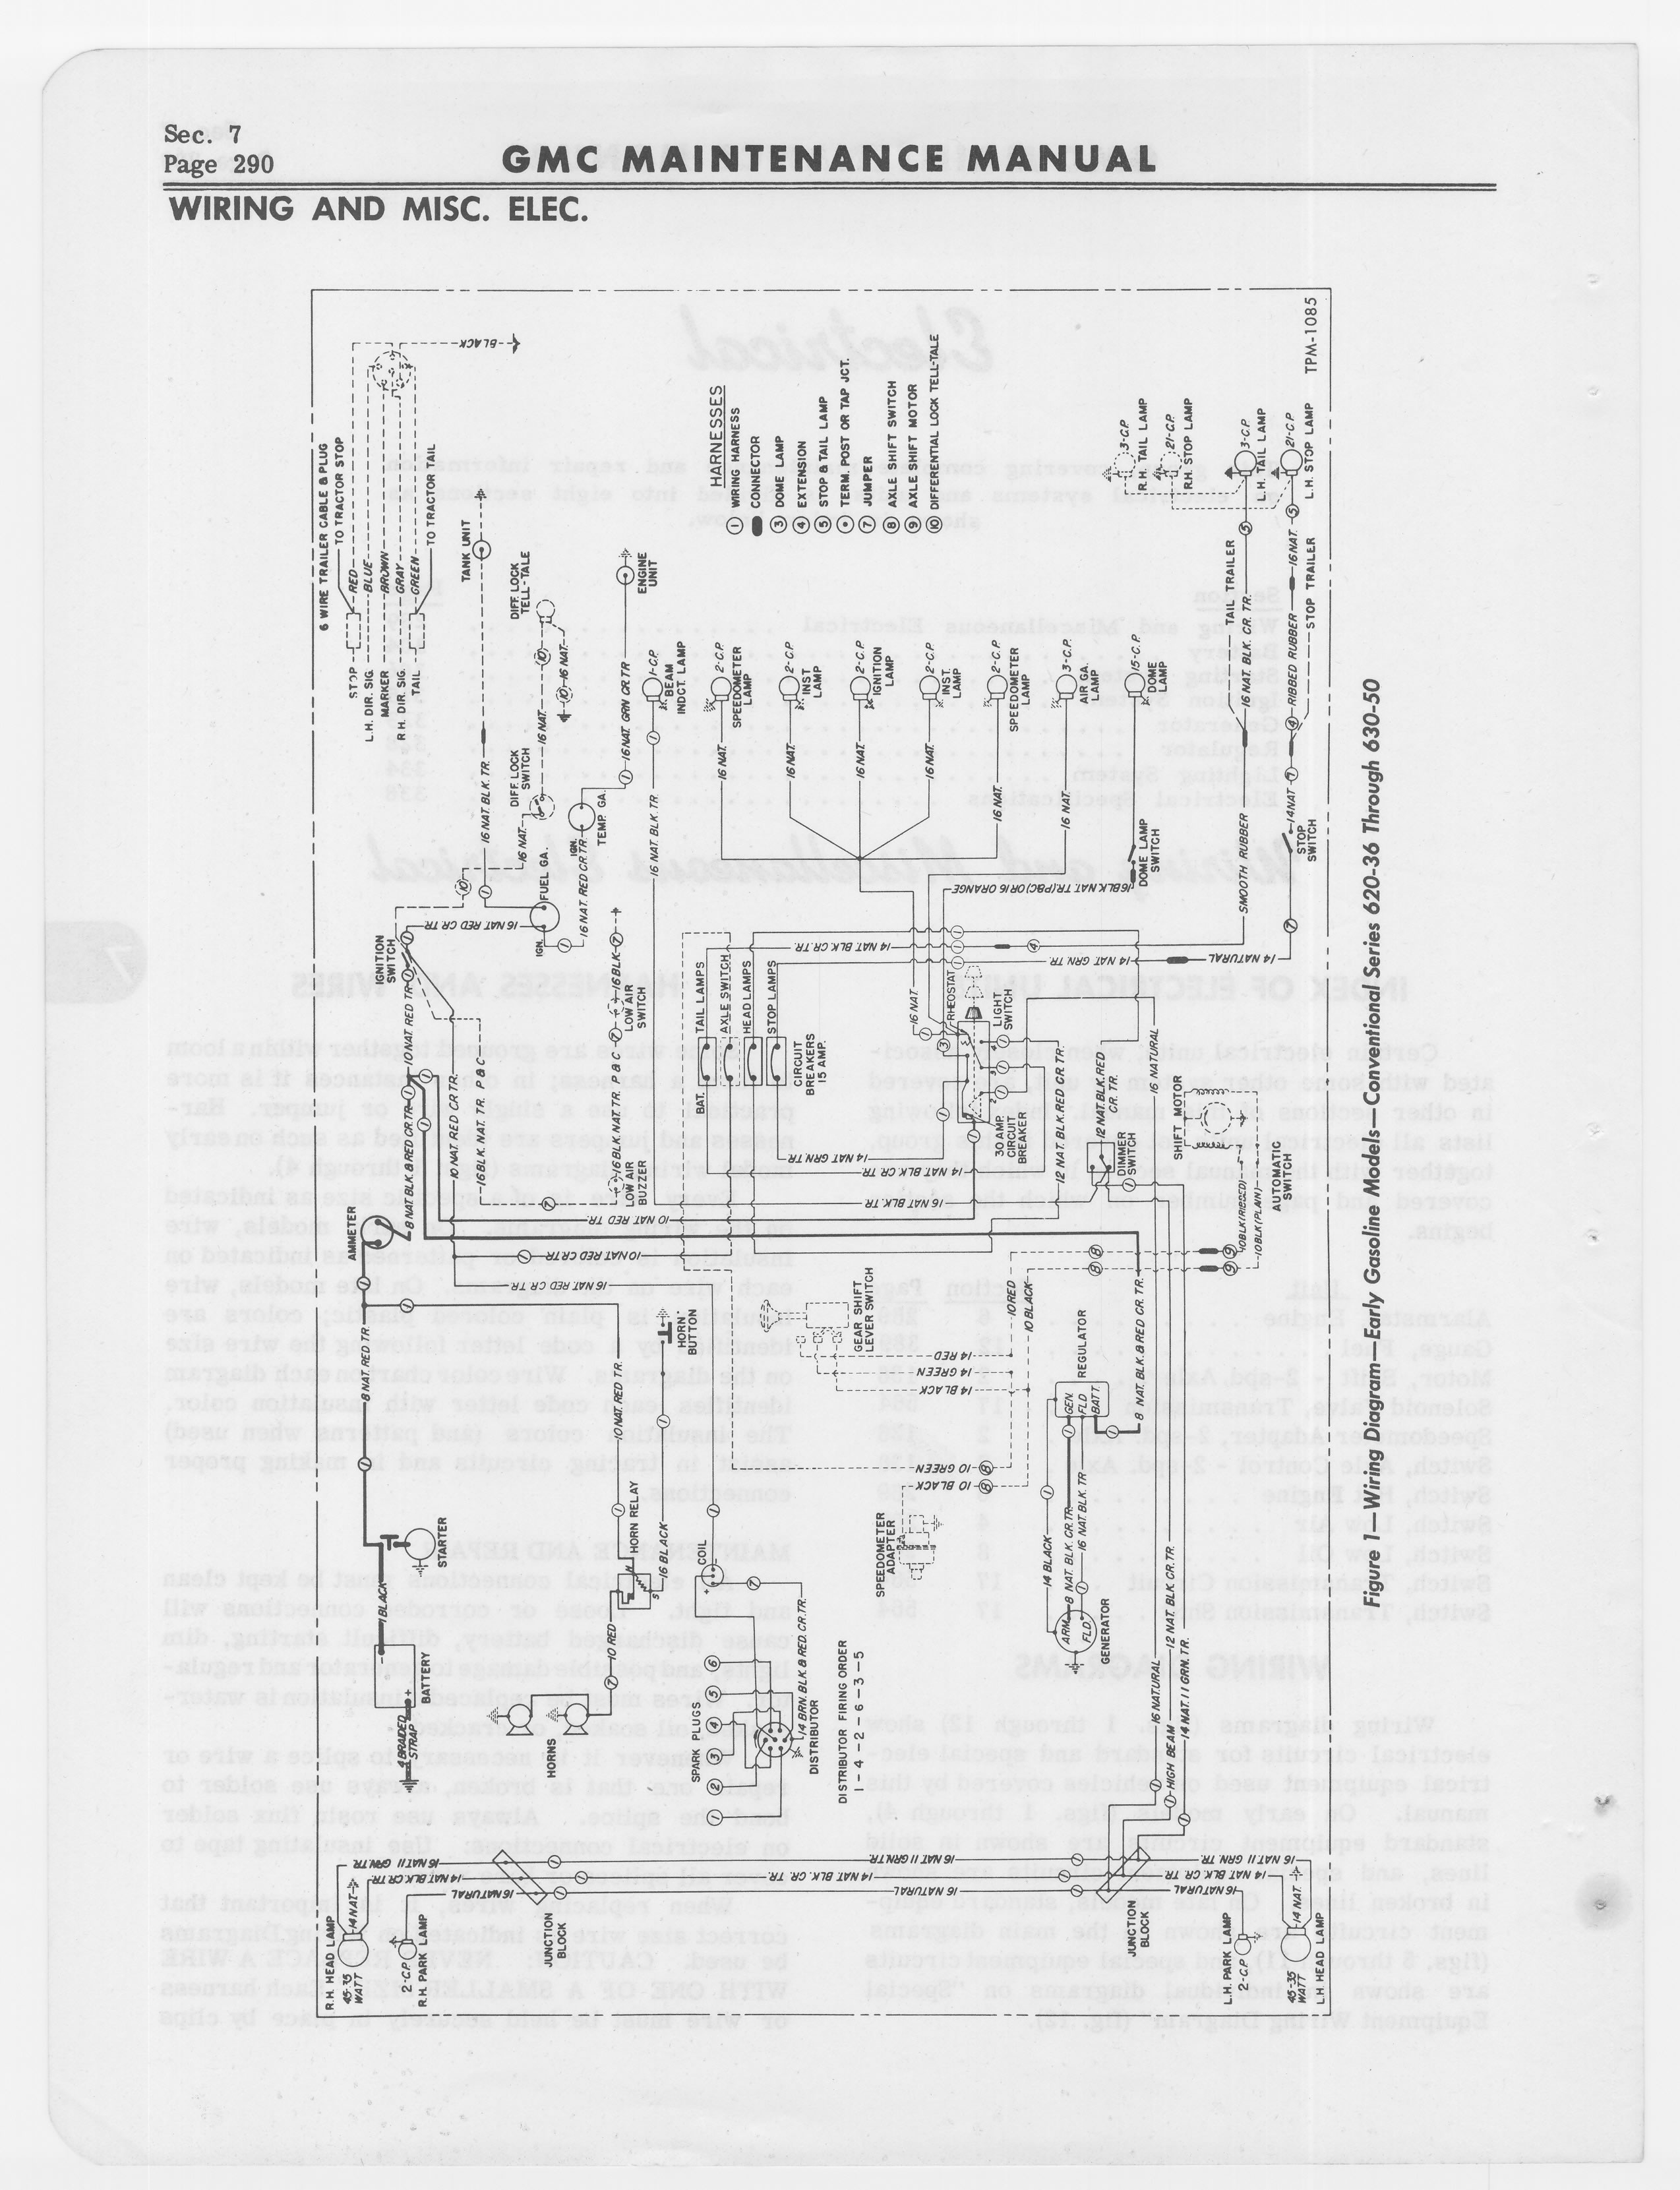 568b Wiring Diagram Also Cat5 Crossover Cable In Auto Electrical Related With